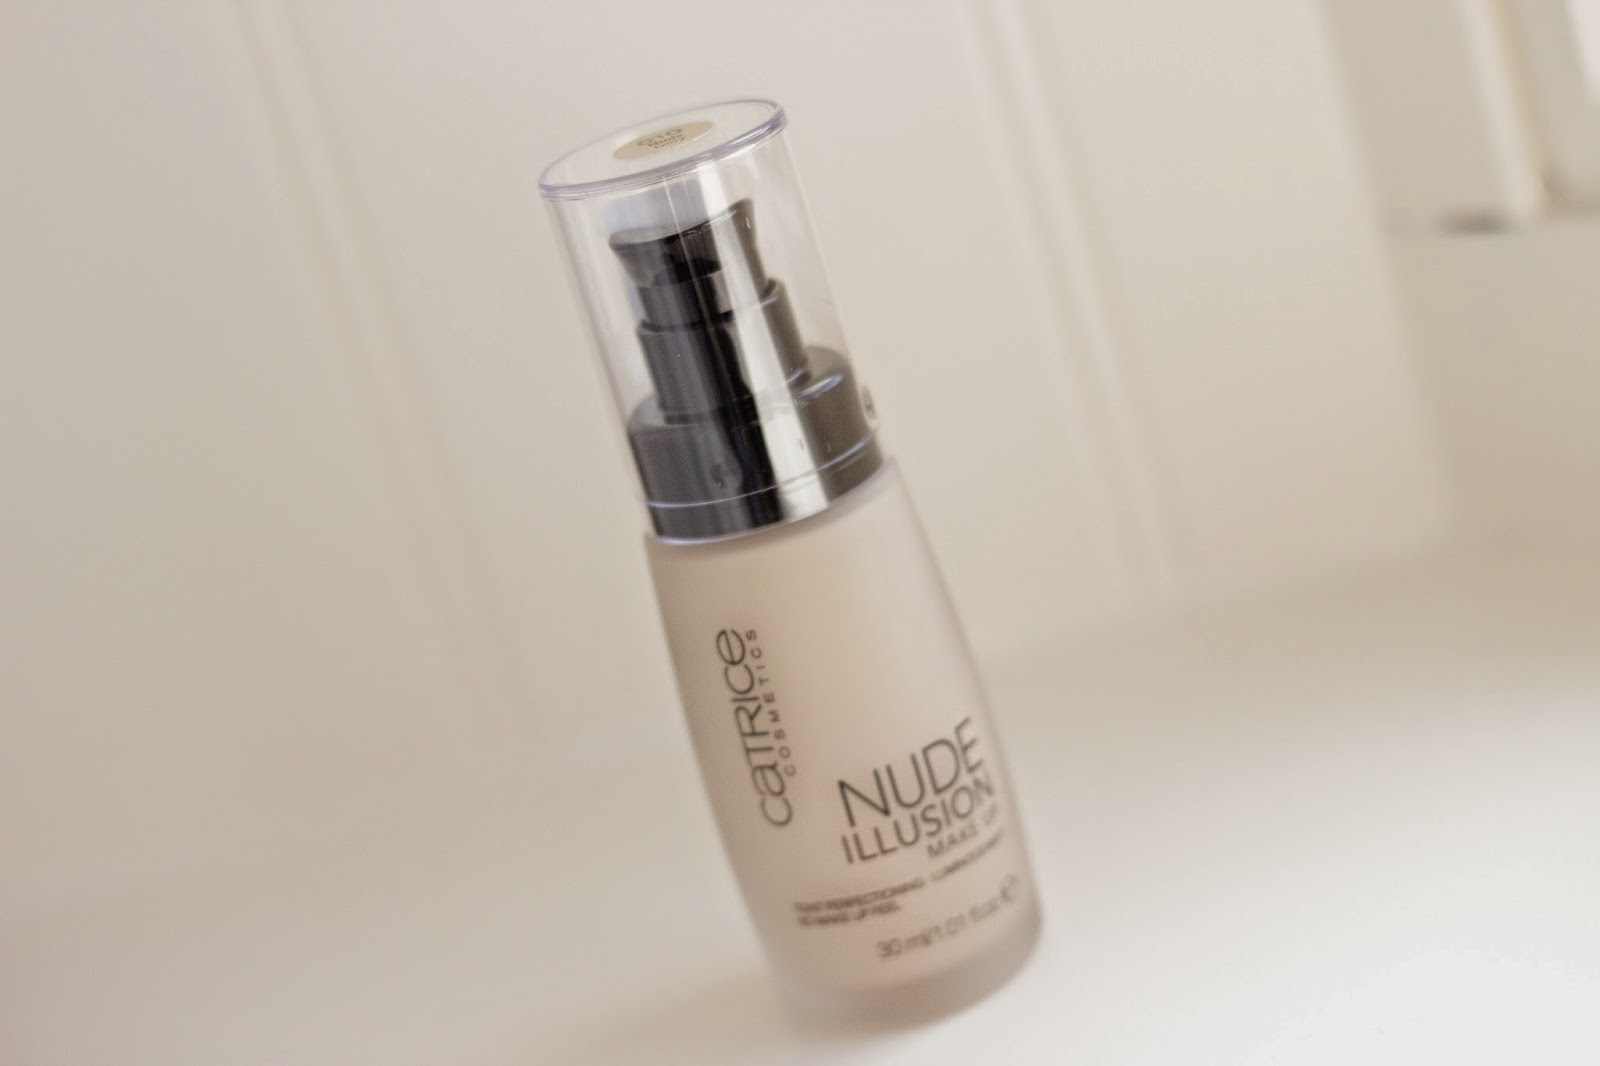 review catrice nude illusion foundation, catrice nude illusion foundation full face